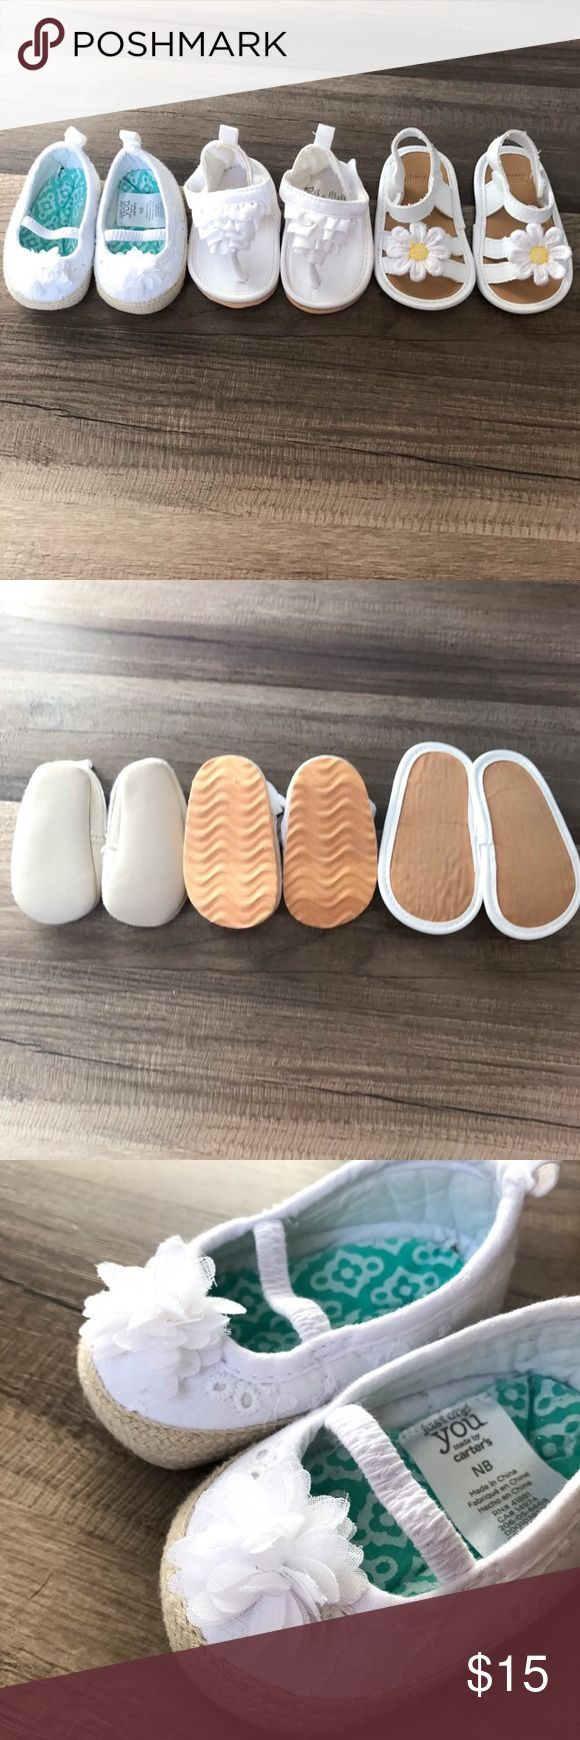 3 Pairs NB white Sandals 3 pairs of white sandals, all sized NB, in very good condition! White ruffle sandals has small blue spot on back (last photo). Brands are Carters and Gymboree.   #carters #gymboree #whitesandals #babygirlshoes #shoelot Gymboree Shoes Sandals & Flip Flops